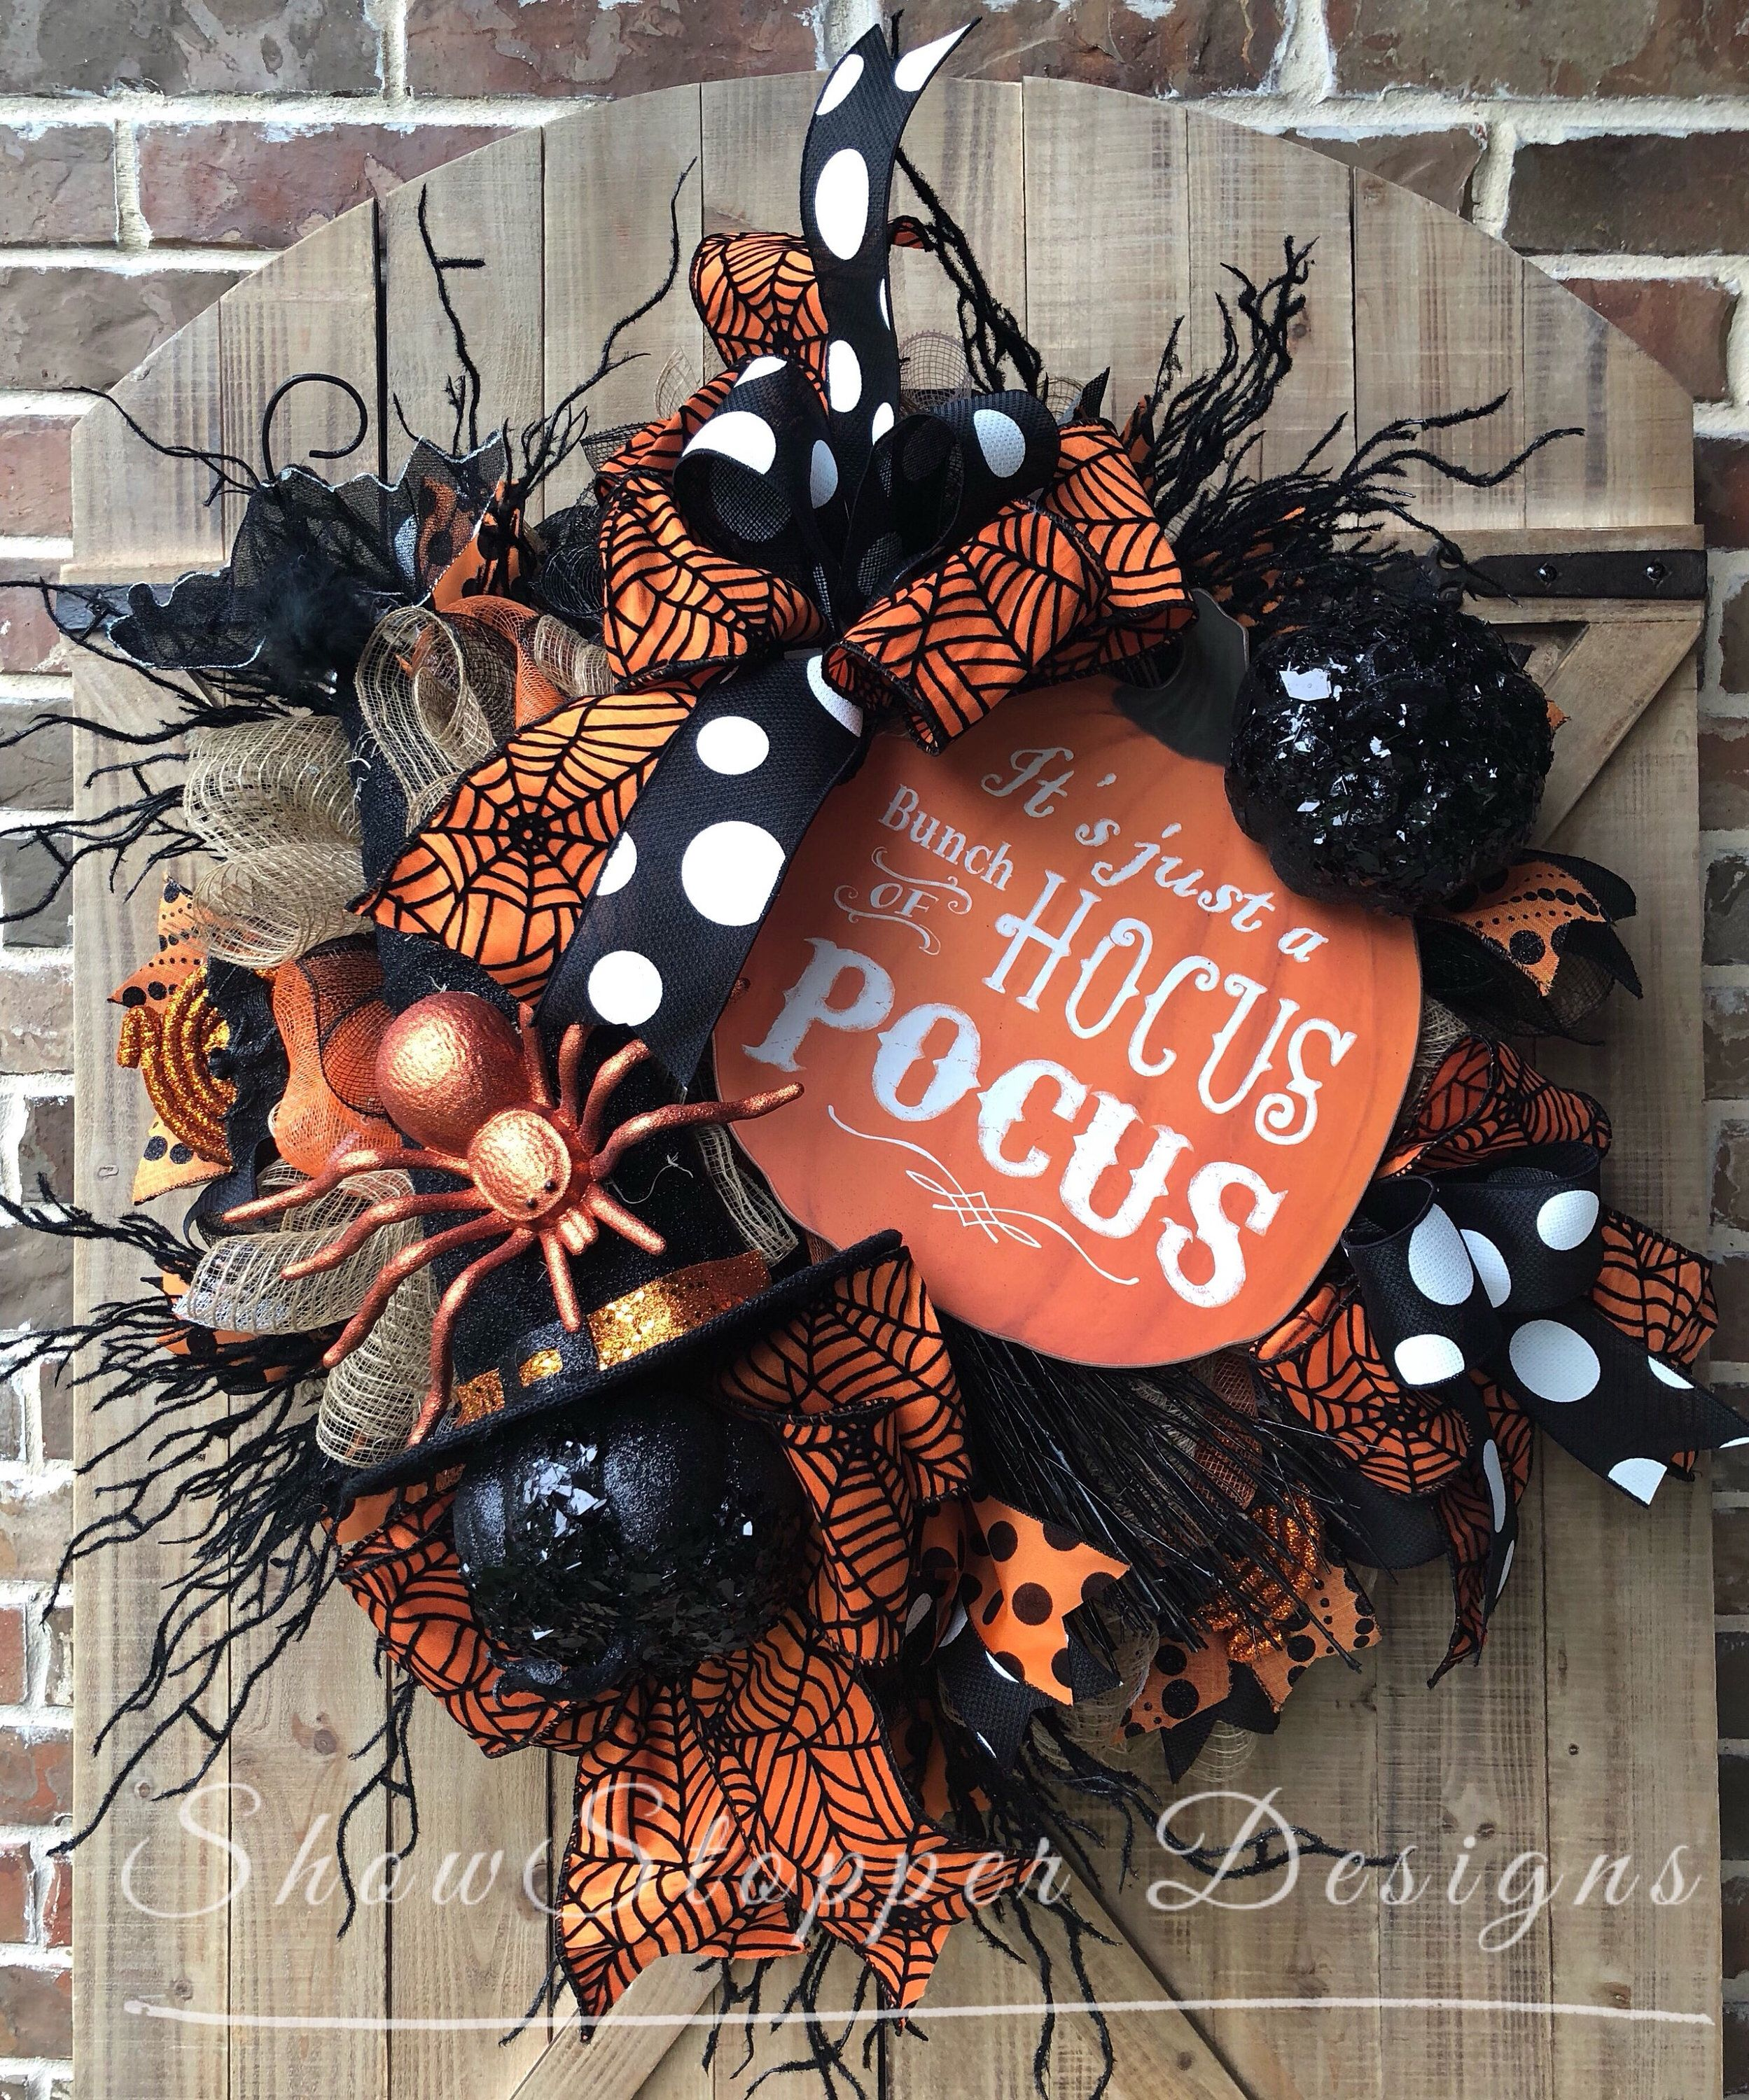 Excited to share this item from my #etsy shop: Witch Wreath,Witch Door Wreath, Wreath,Halloween Wreath,Skelton Door Decor,Skelton Wreath,Witch Door Decor, Halloween Witch,Spider Wreath #halloweenwreaths